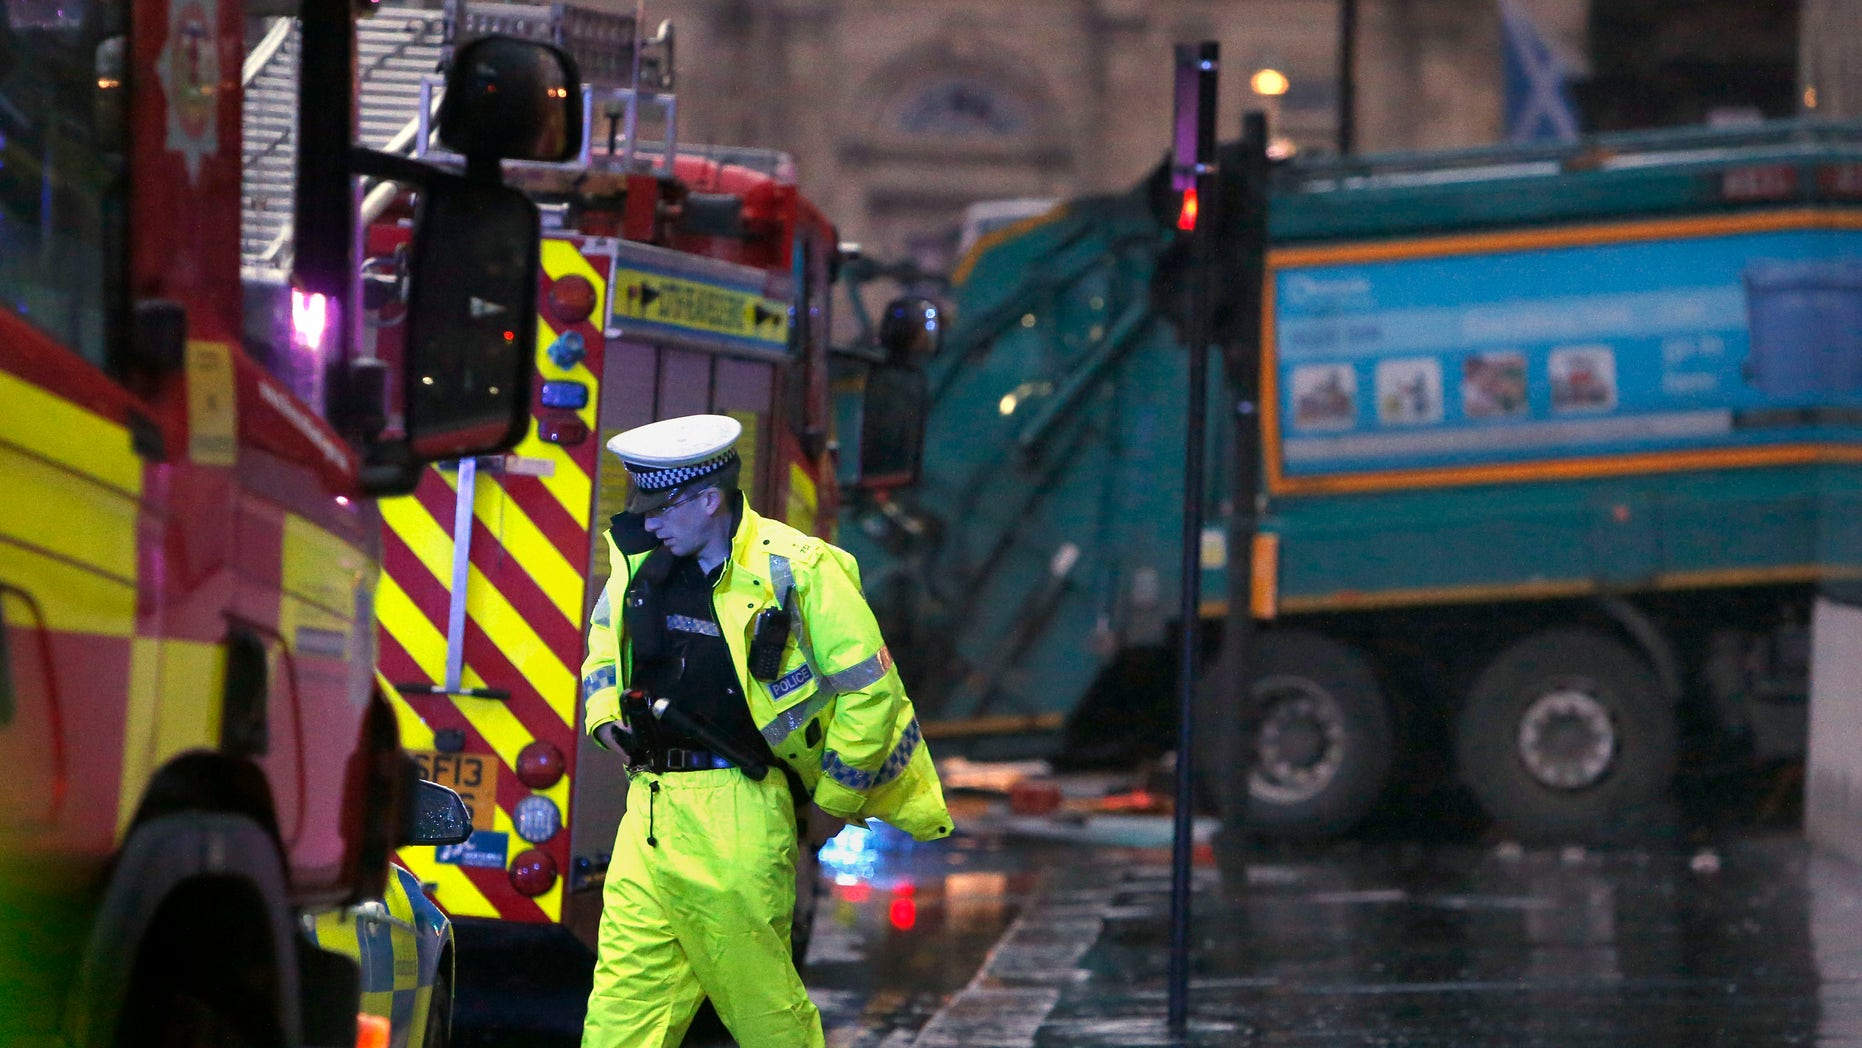 Dec. 22, 2014 - The scene in George Square in Glasgow Scotland  after a garbage truck crashed into a group of pedestrians. Emergency services responded to the incident in the central part of the city.